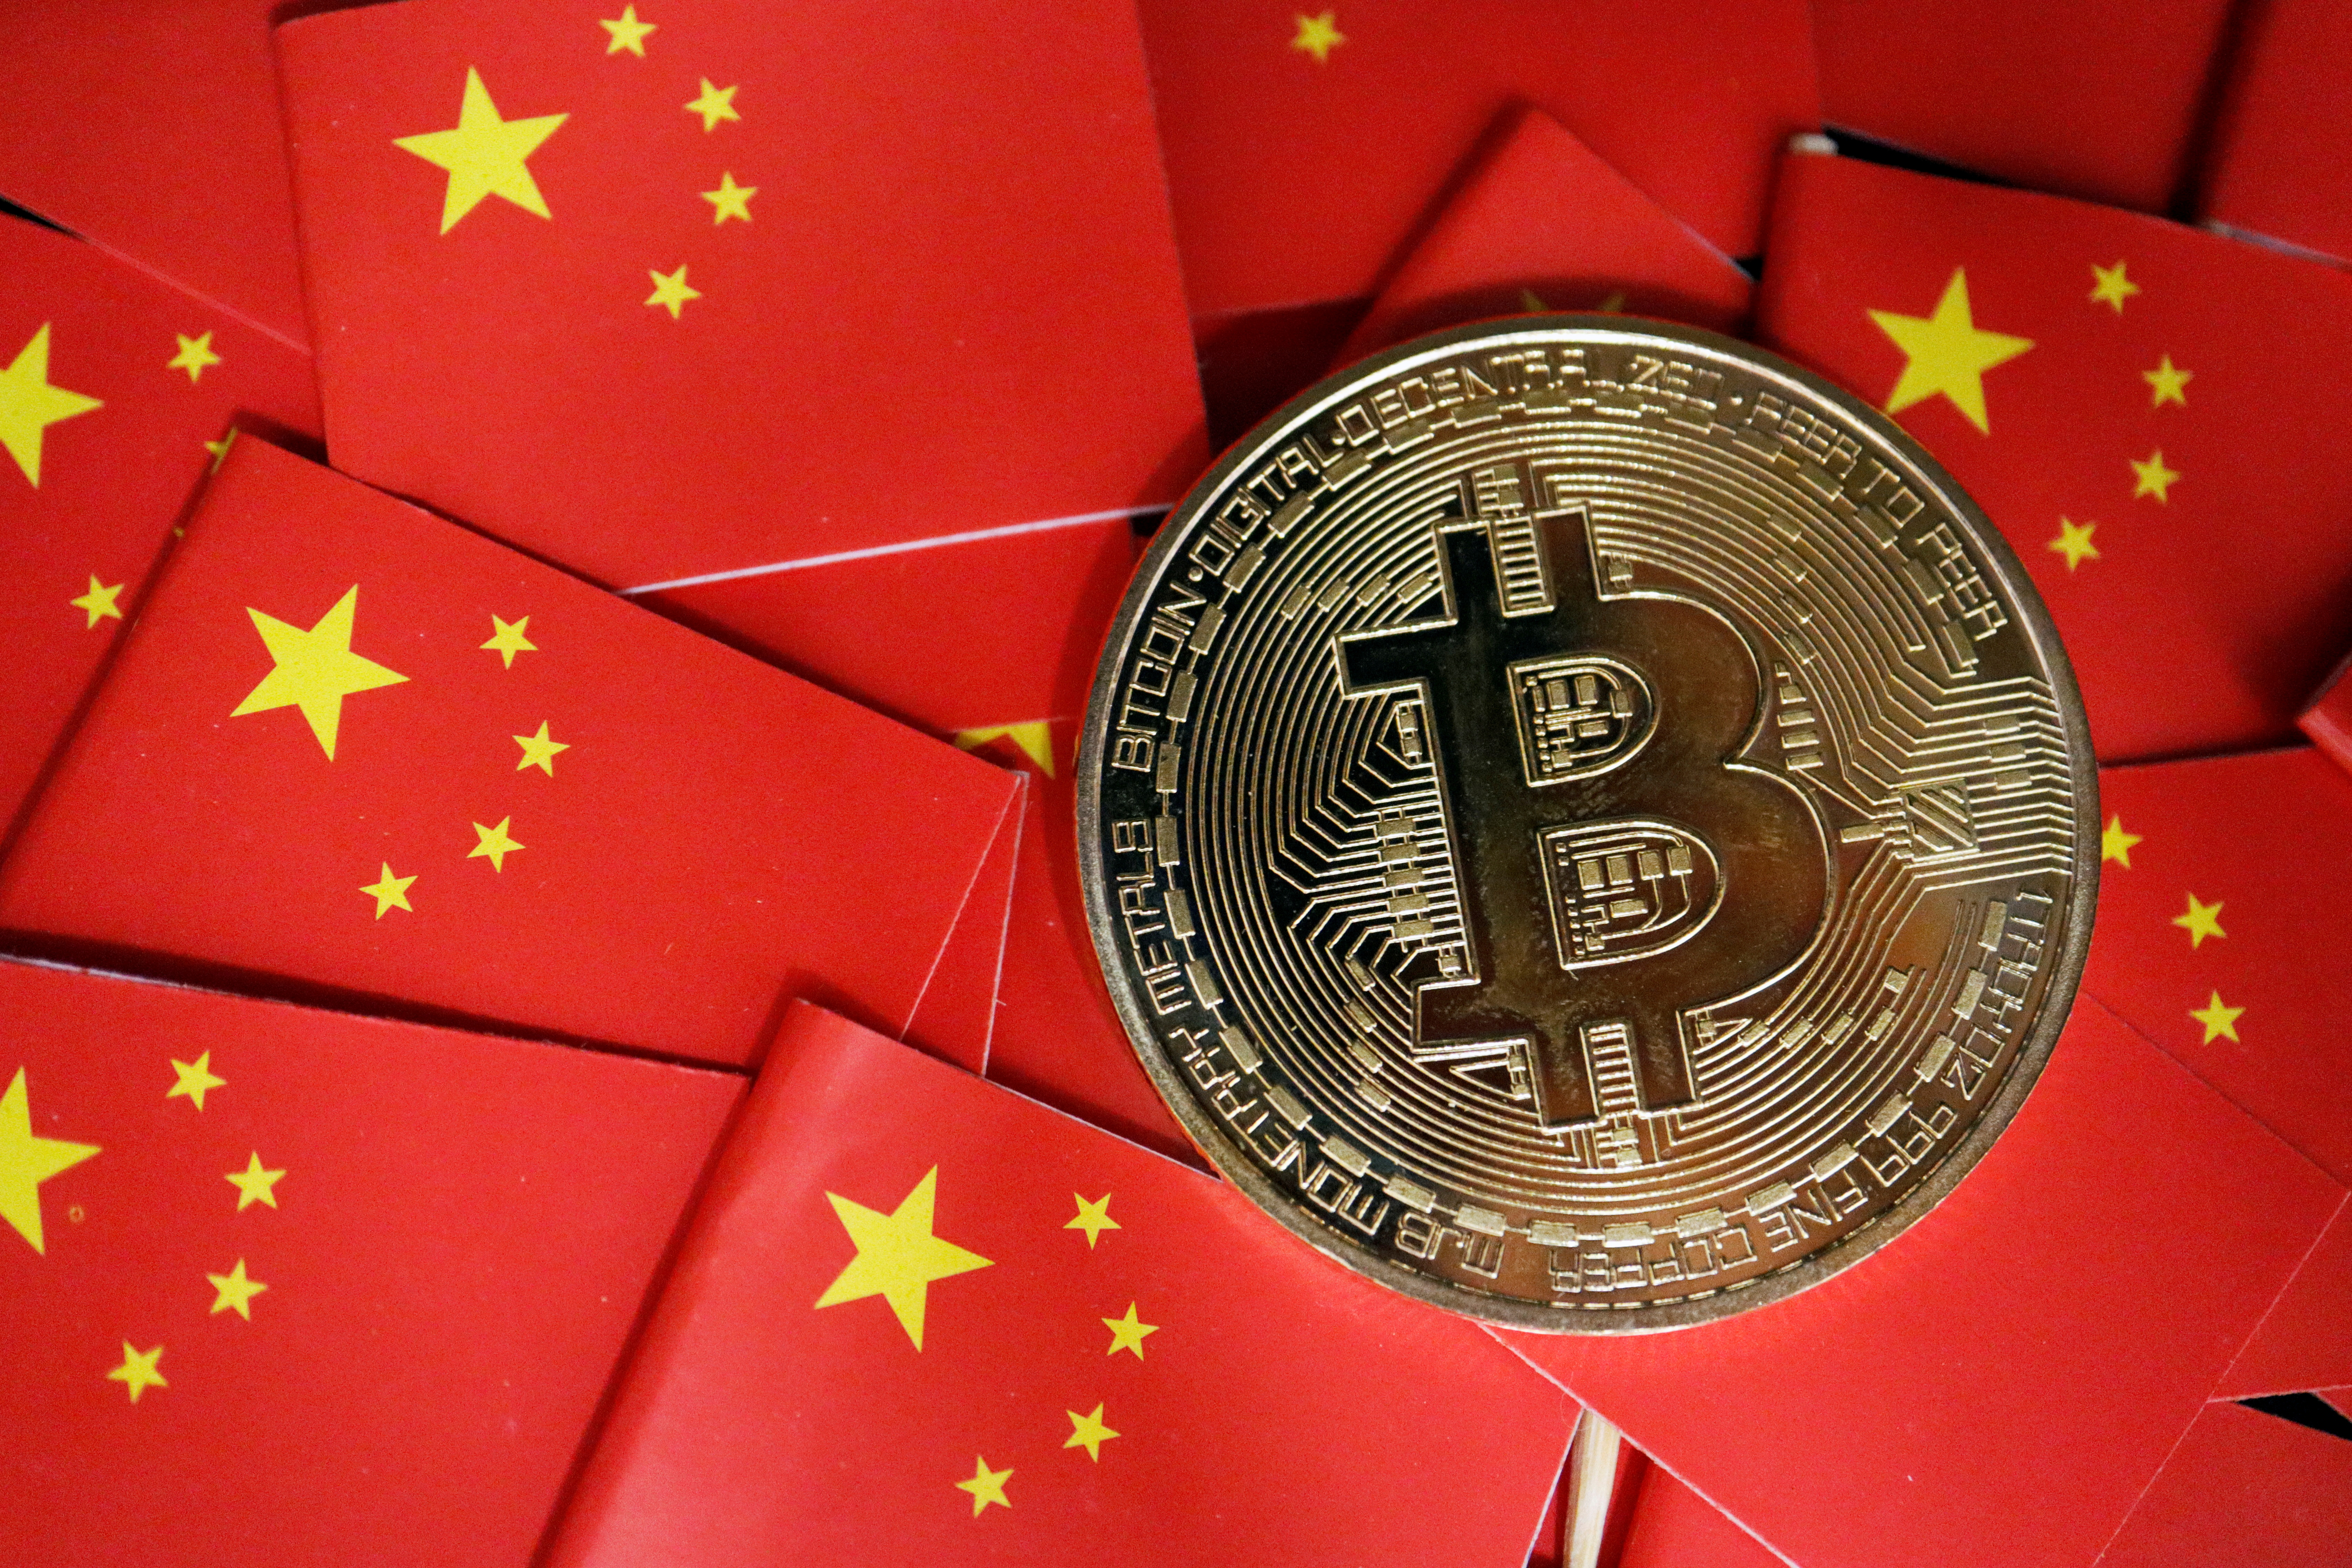 A representation of Bitcoin cryptocurrency is seen amid China's flags in this illustration picture taken September 27, 2021. REUTERS/Florence Lo/Illustration